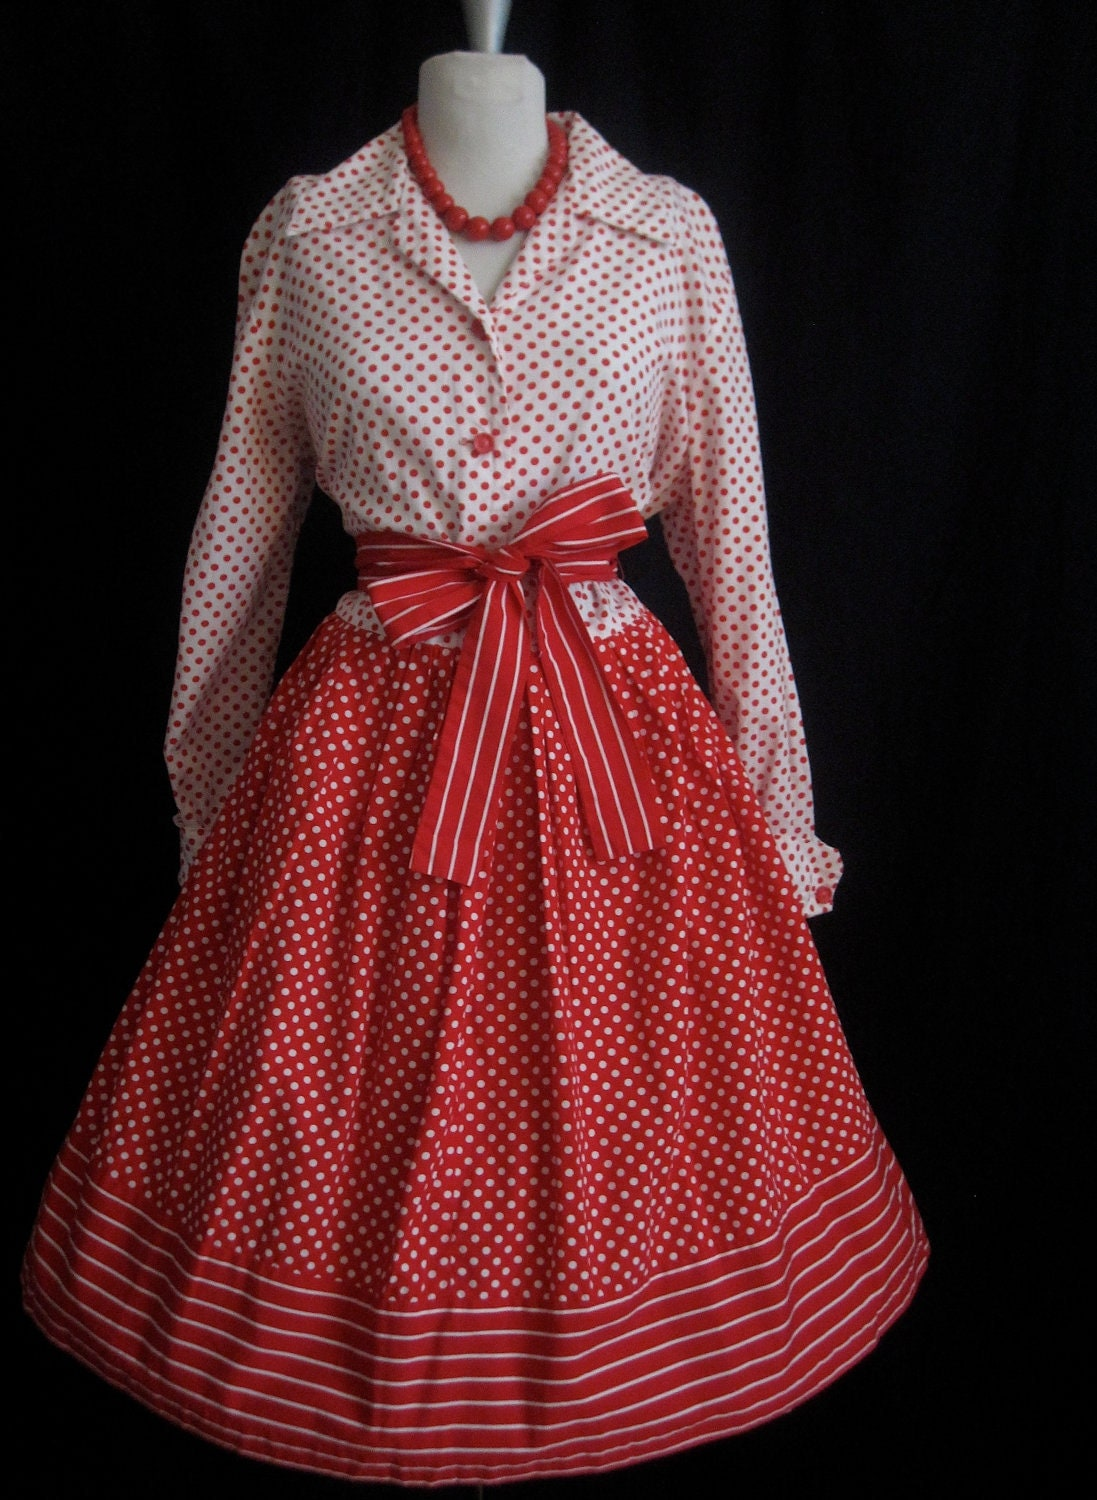 Vintage 1950's Cherry Polkadot and Stripes  MadMen Rockabilly Swing Christmas Party Dress Full figure Free shipping